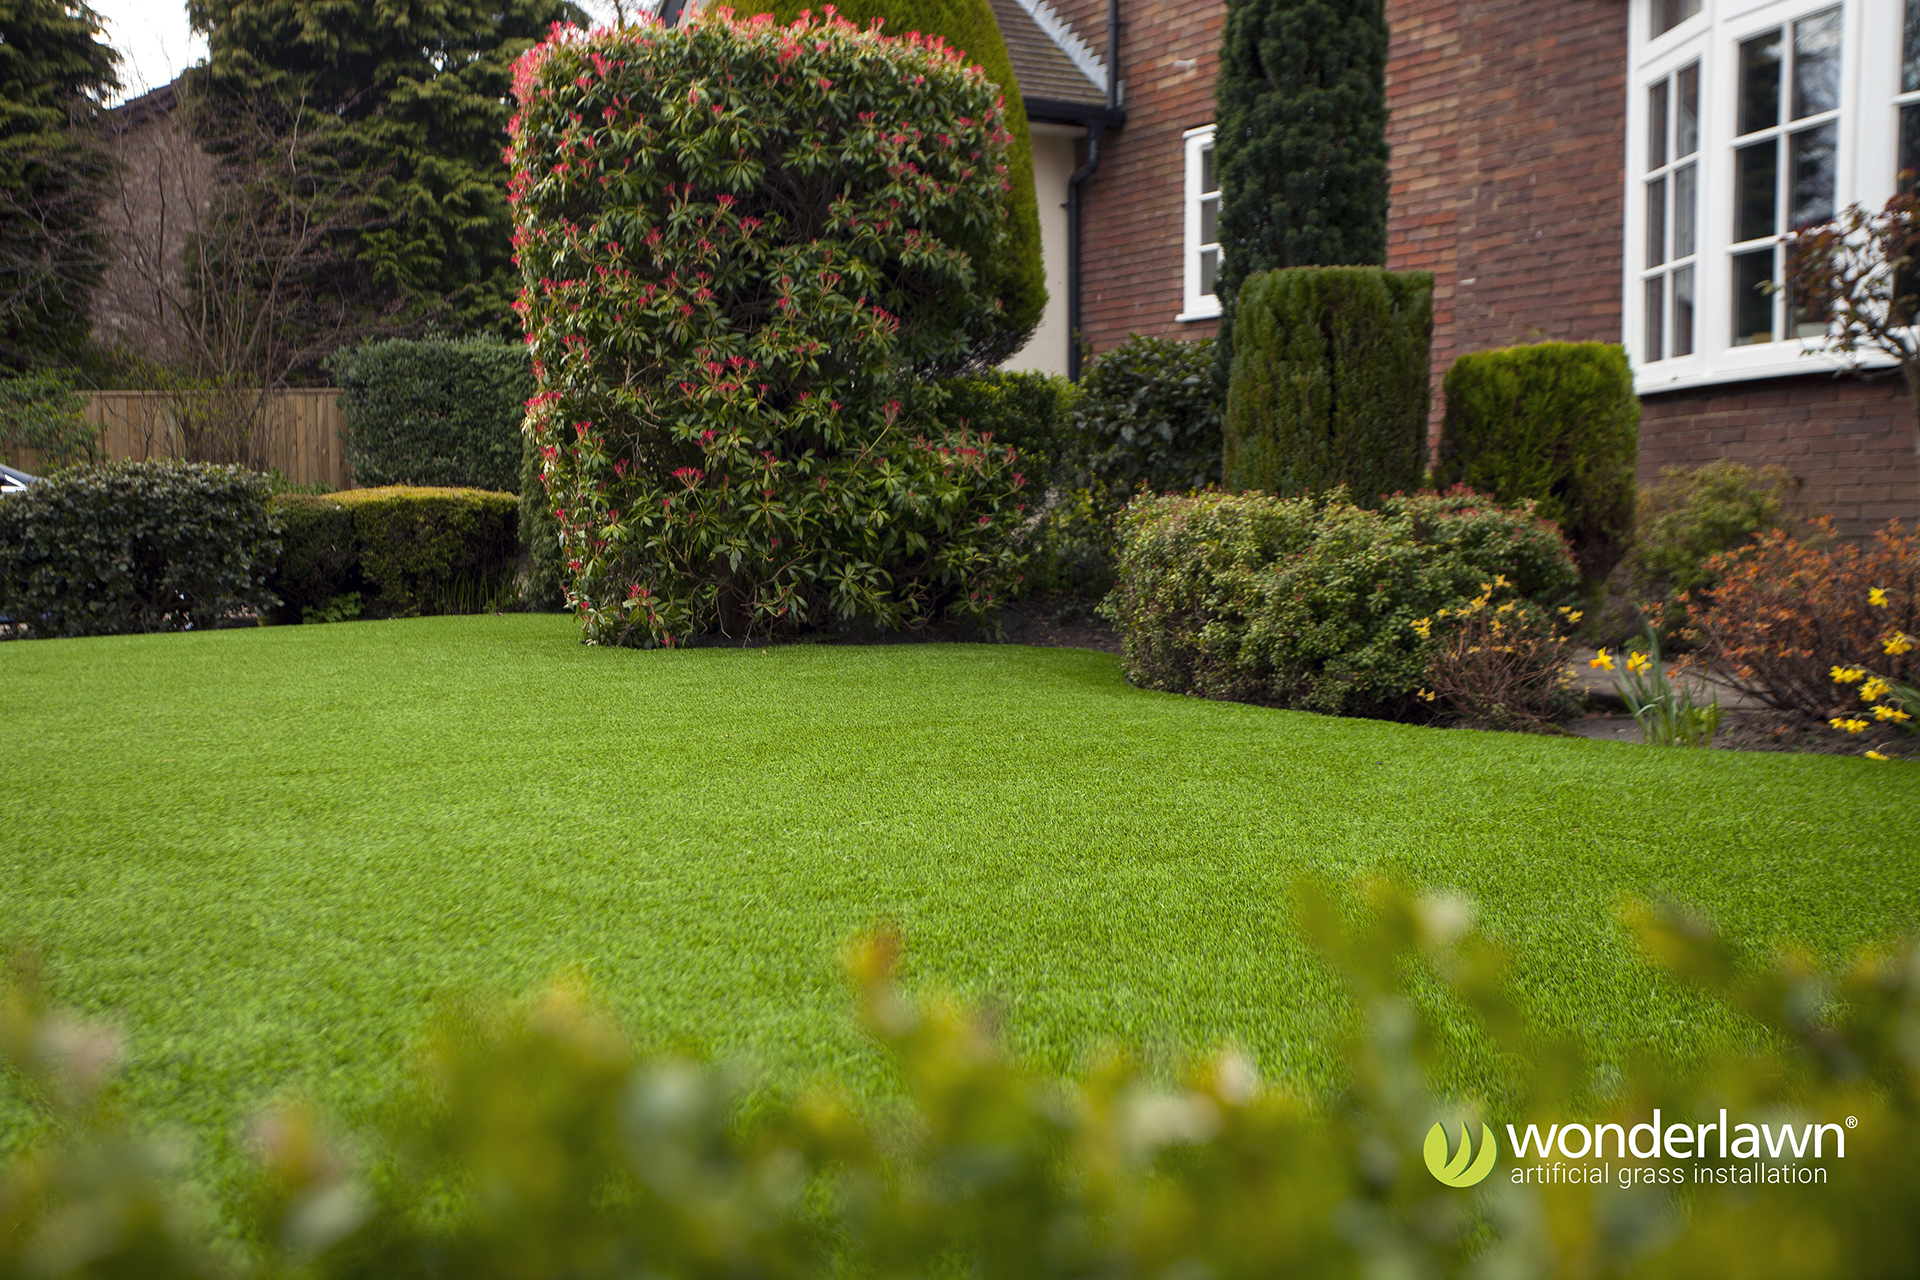 wonderlawn - an artificial grass franchise